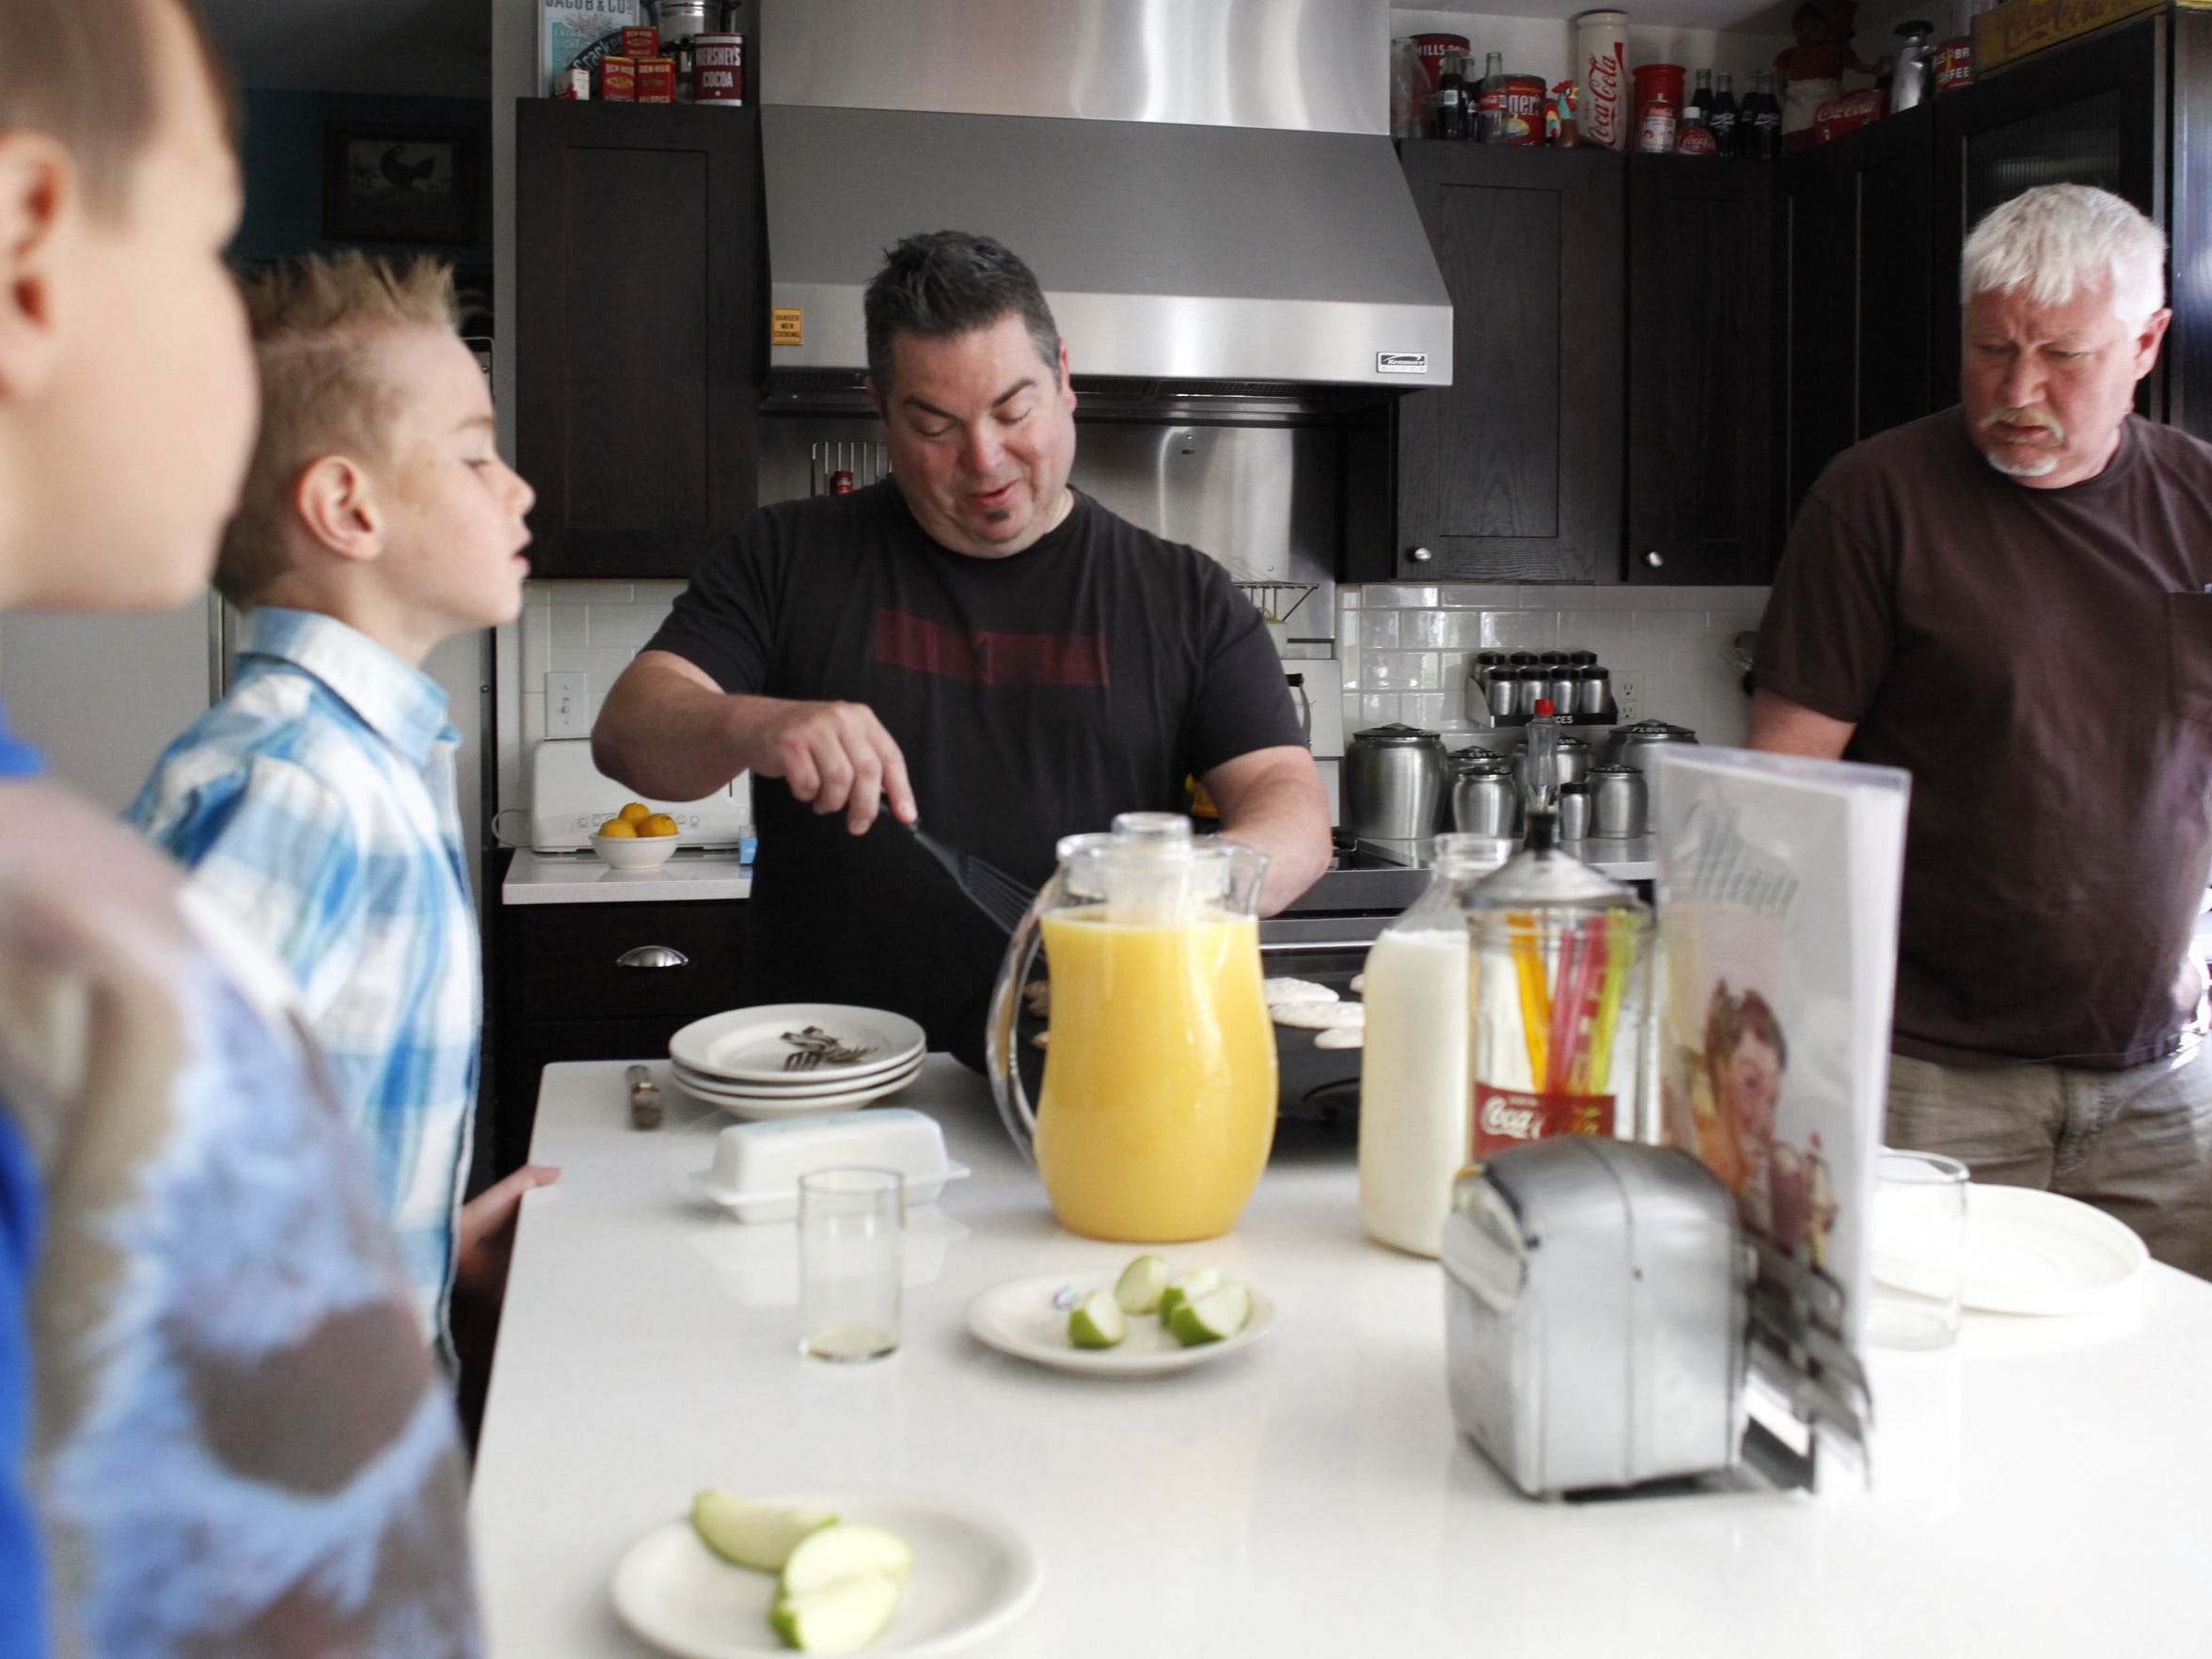 In this 2012 photo Jerry Douglass, left, and Steve Janowski cook breakfast for their two younger sons Nikolas, 4, and Joshua, 7, before leaving for Joshua's baseball game Saturday.